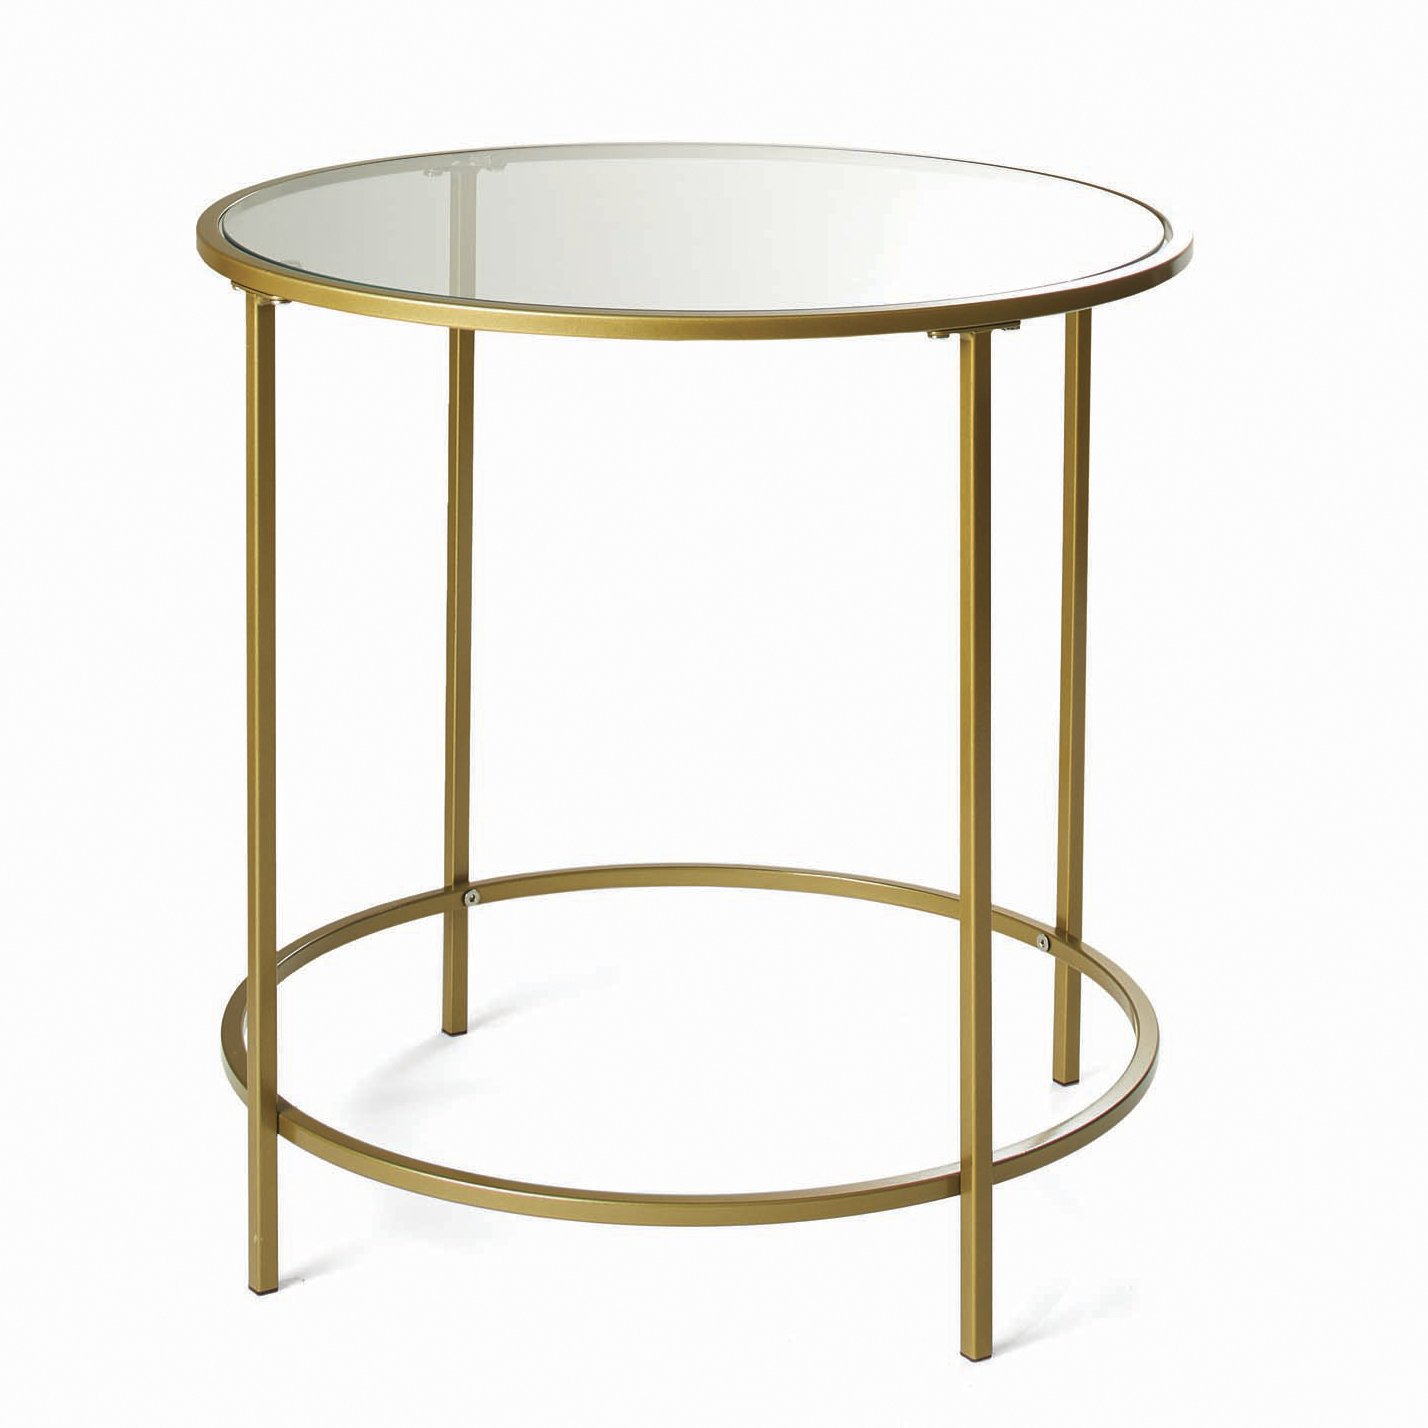 modern glam gold finish metal glass round end table janika accent living room kitchen dining faux marble bedside ashley furniture coffee set white and wood person computer desk